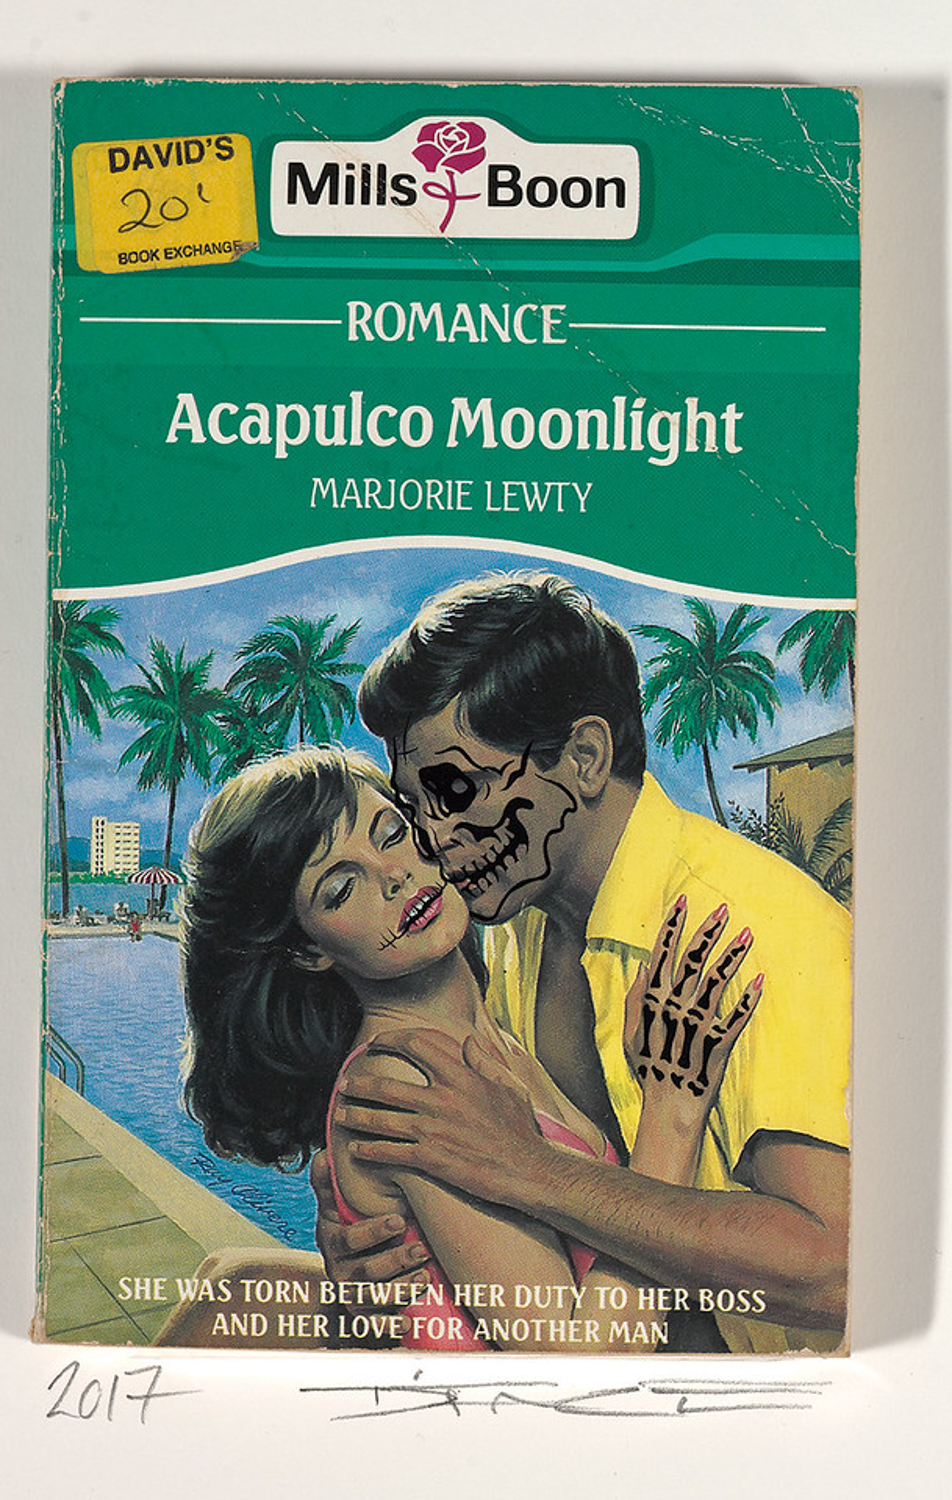 DFace - Acapulco Moonlight